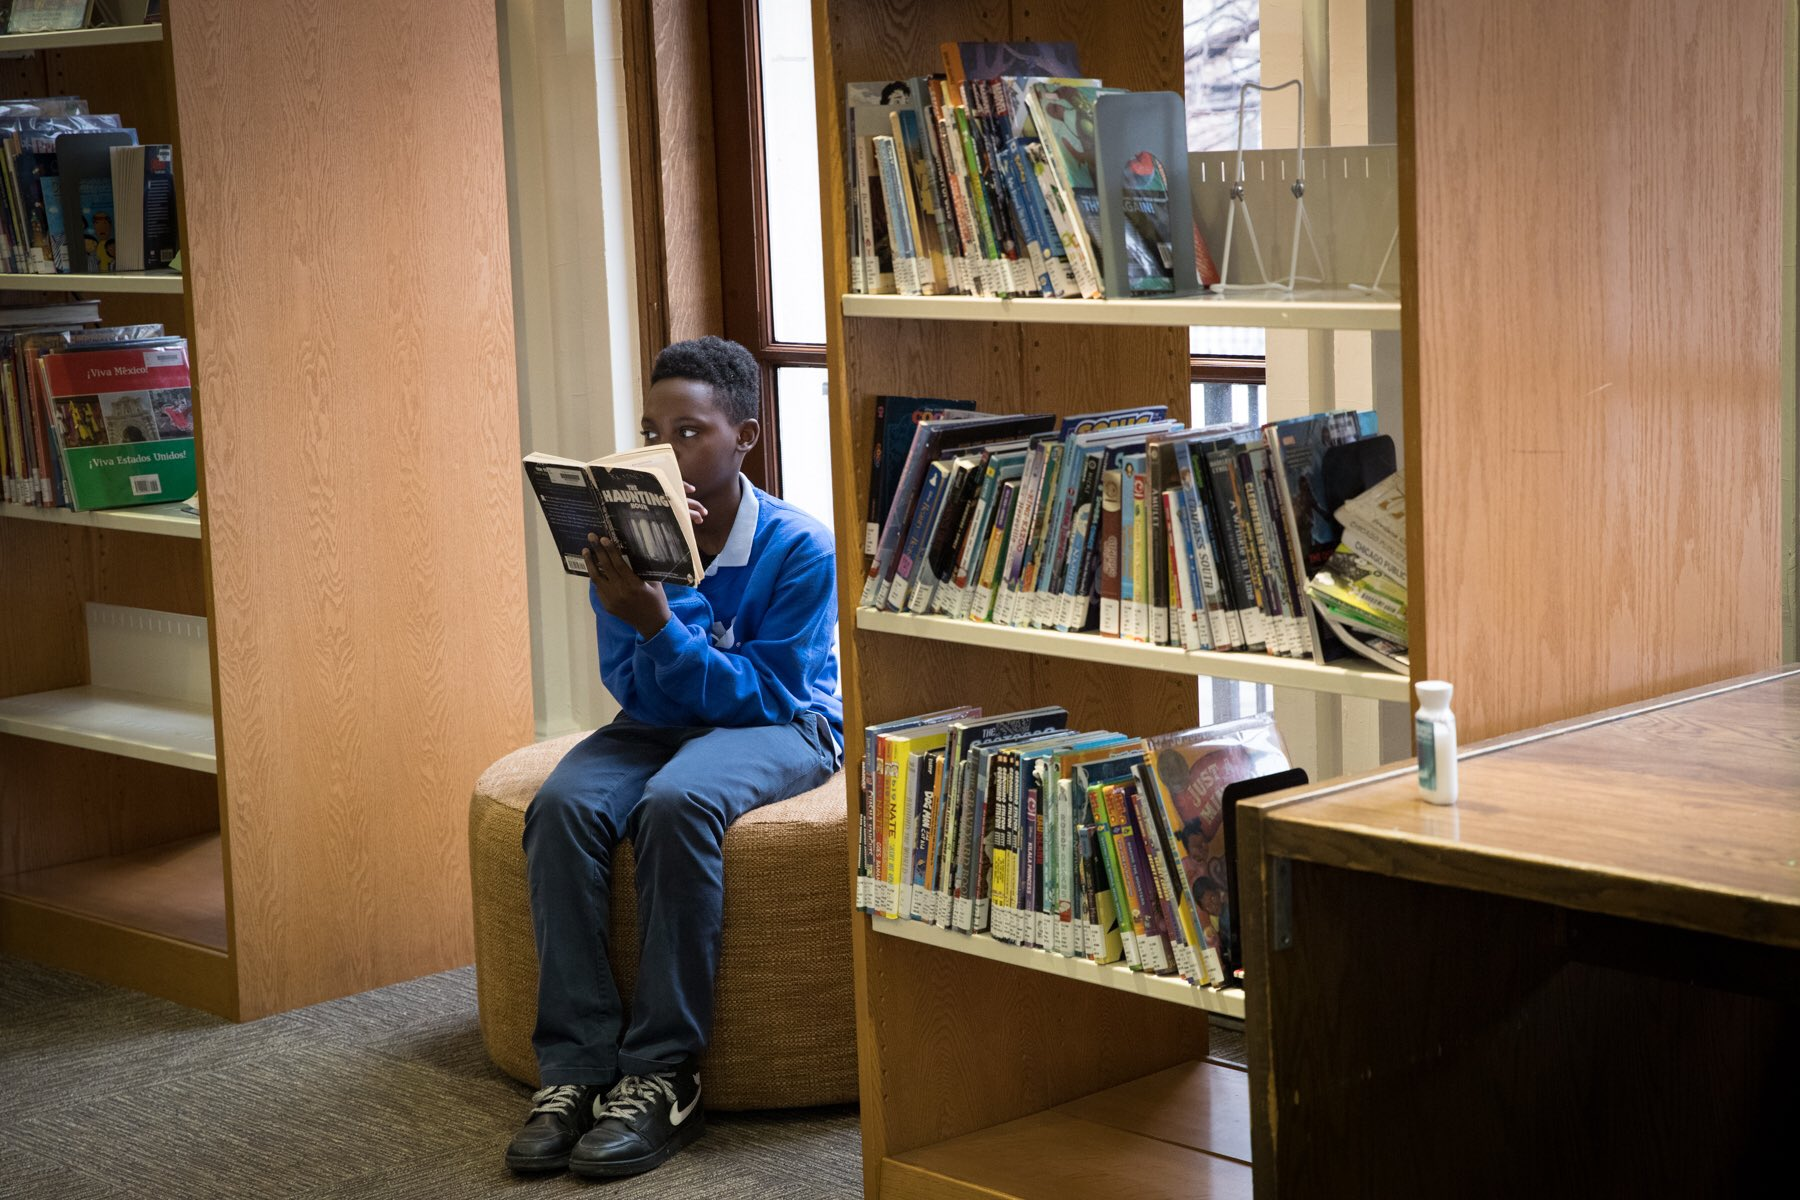 Chicago's West Side gets first regional library in 40 years